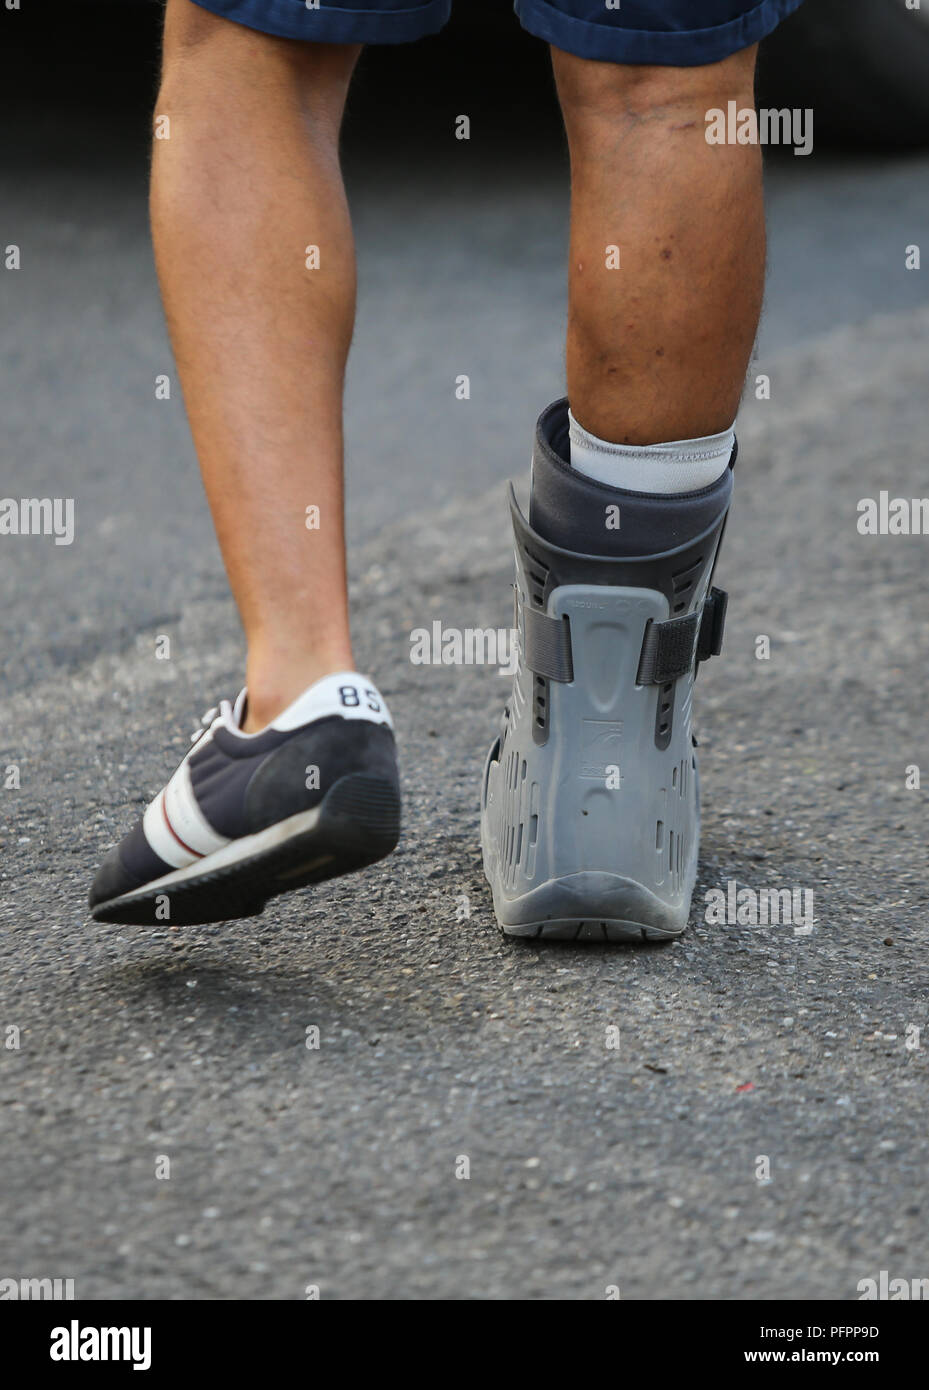 Details of an injured leg in an orthosis of a patient going to the hospital - Stock Image